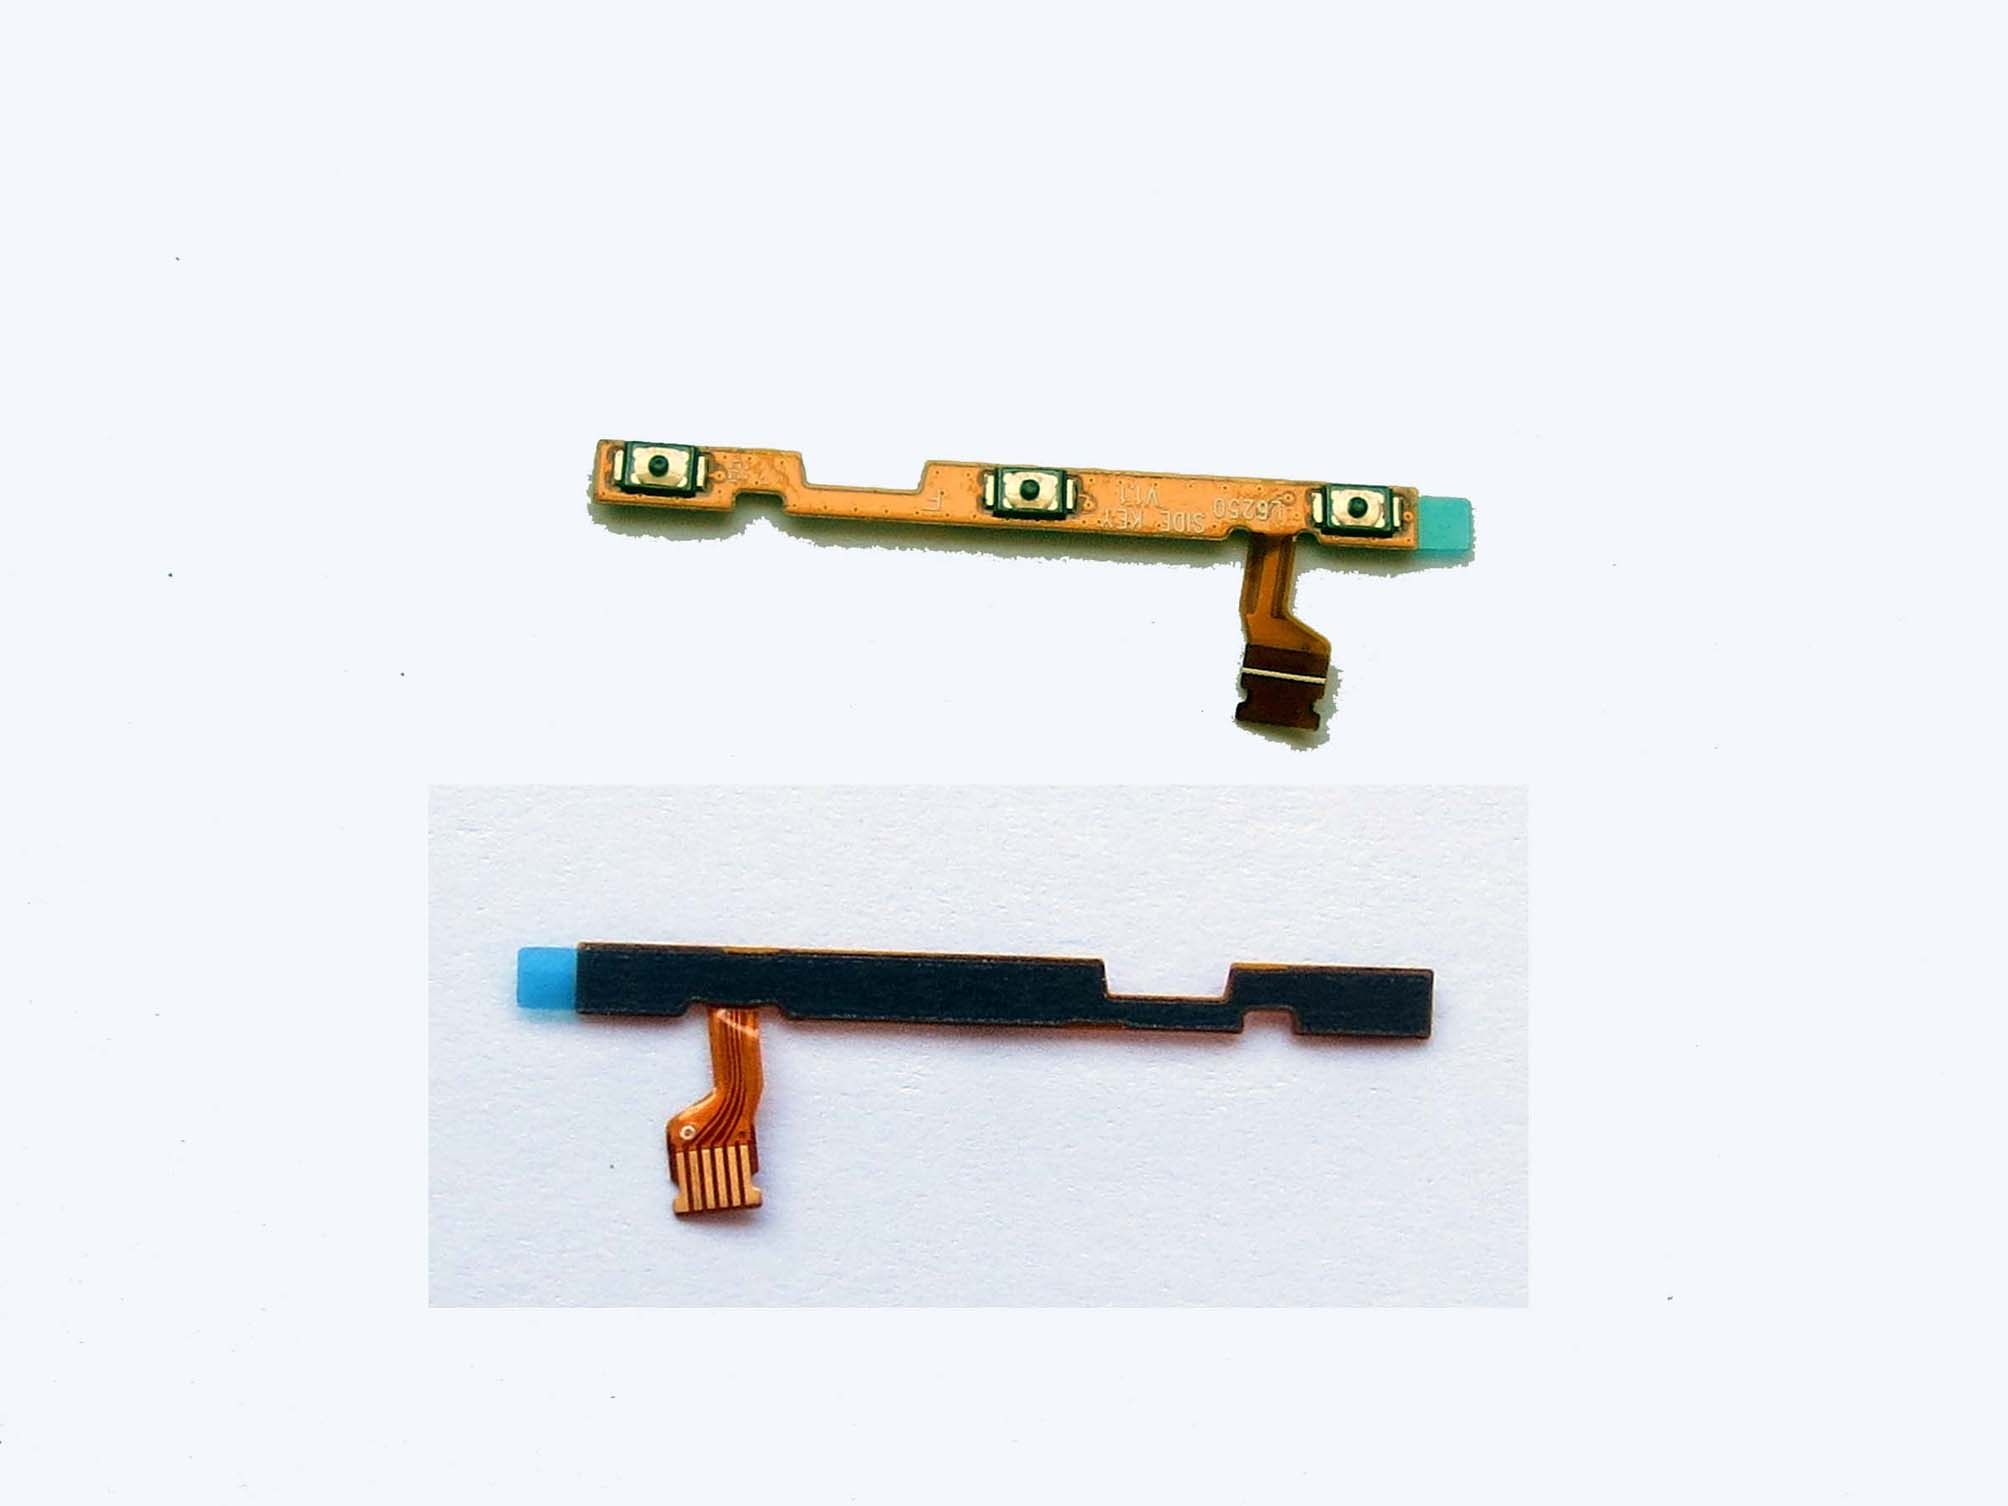 Original Power On/Off + Volume Up/Down button Flex Cable for Redmi S2